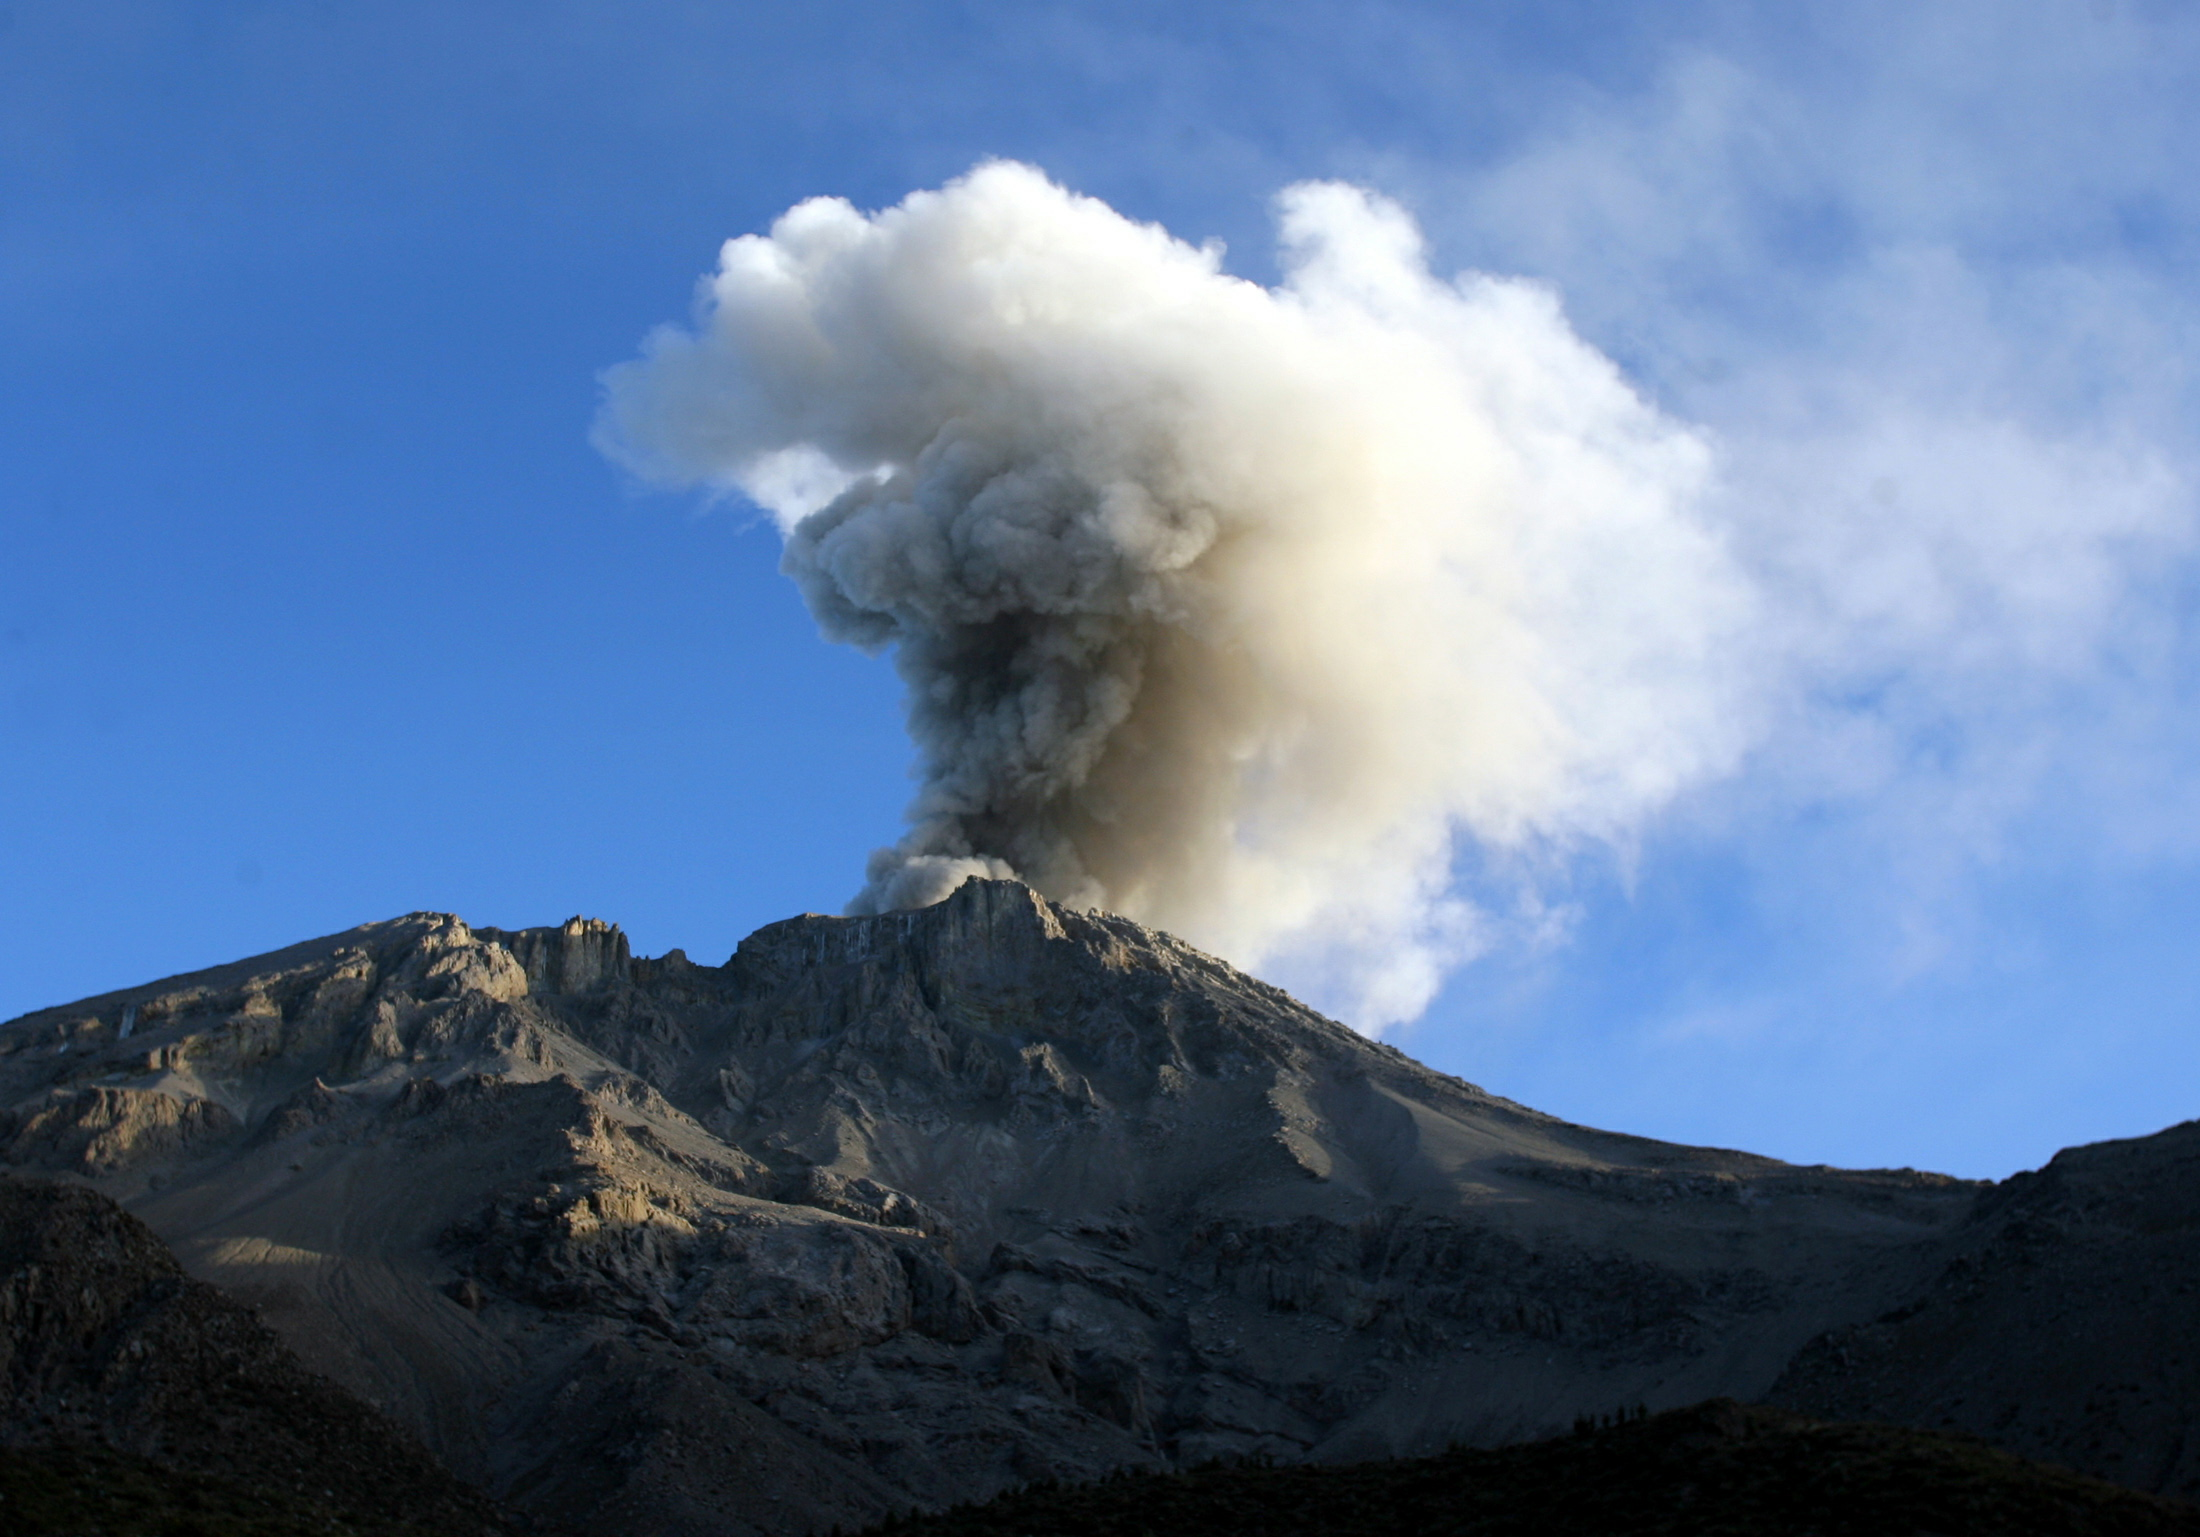 Peru Volcano Erupts After 40 Years 4 Fast Facts About Mount Ubinas Eruption